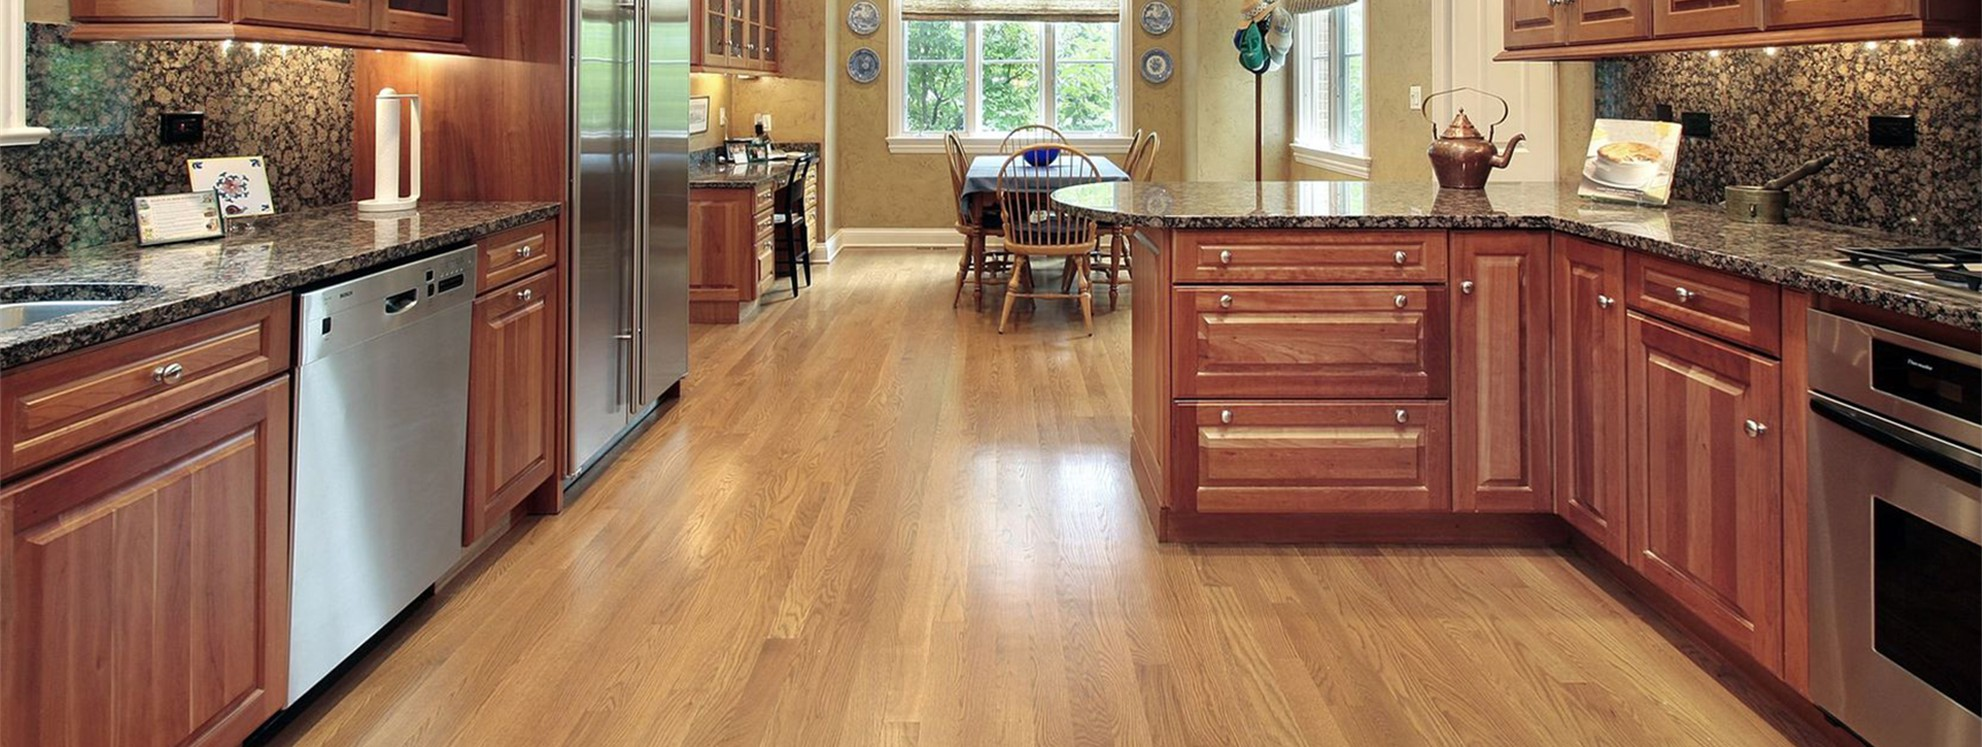 Austin S First Choice In Flooring For Over 30 Years